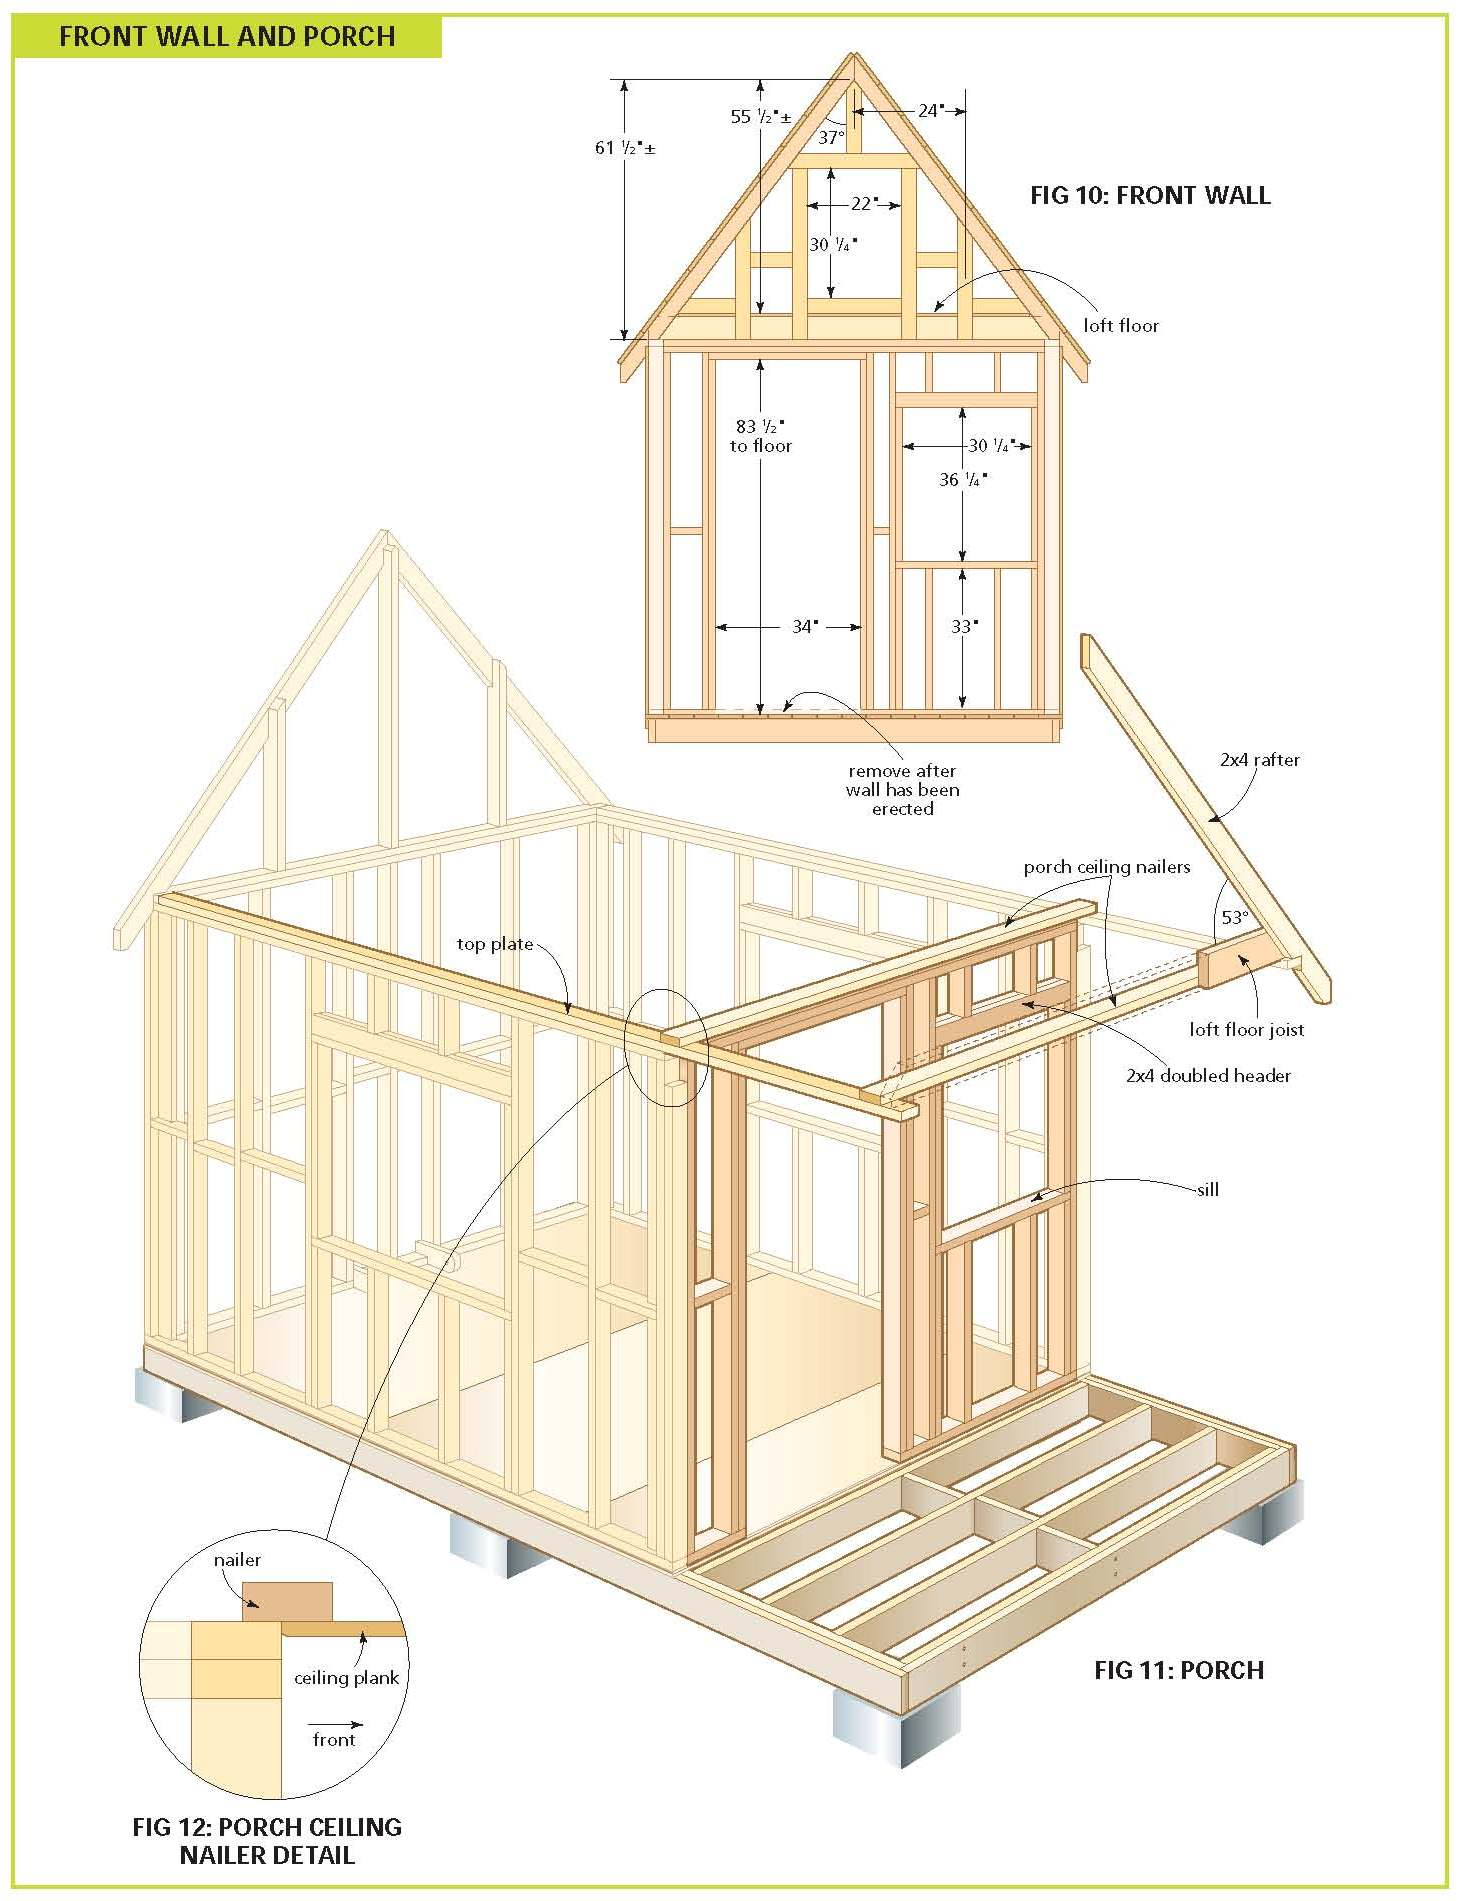 1 000 shed pinterest - Free cottage house plans image ...